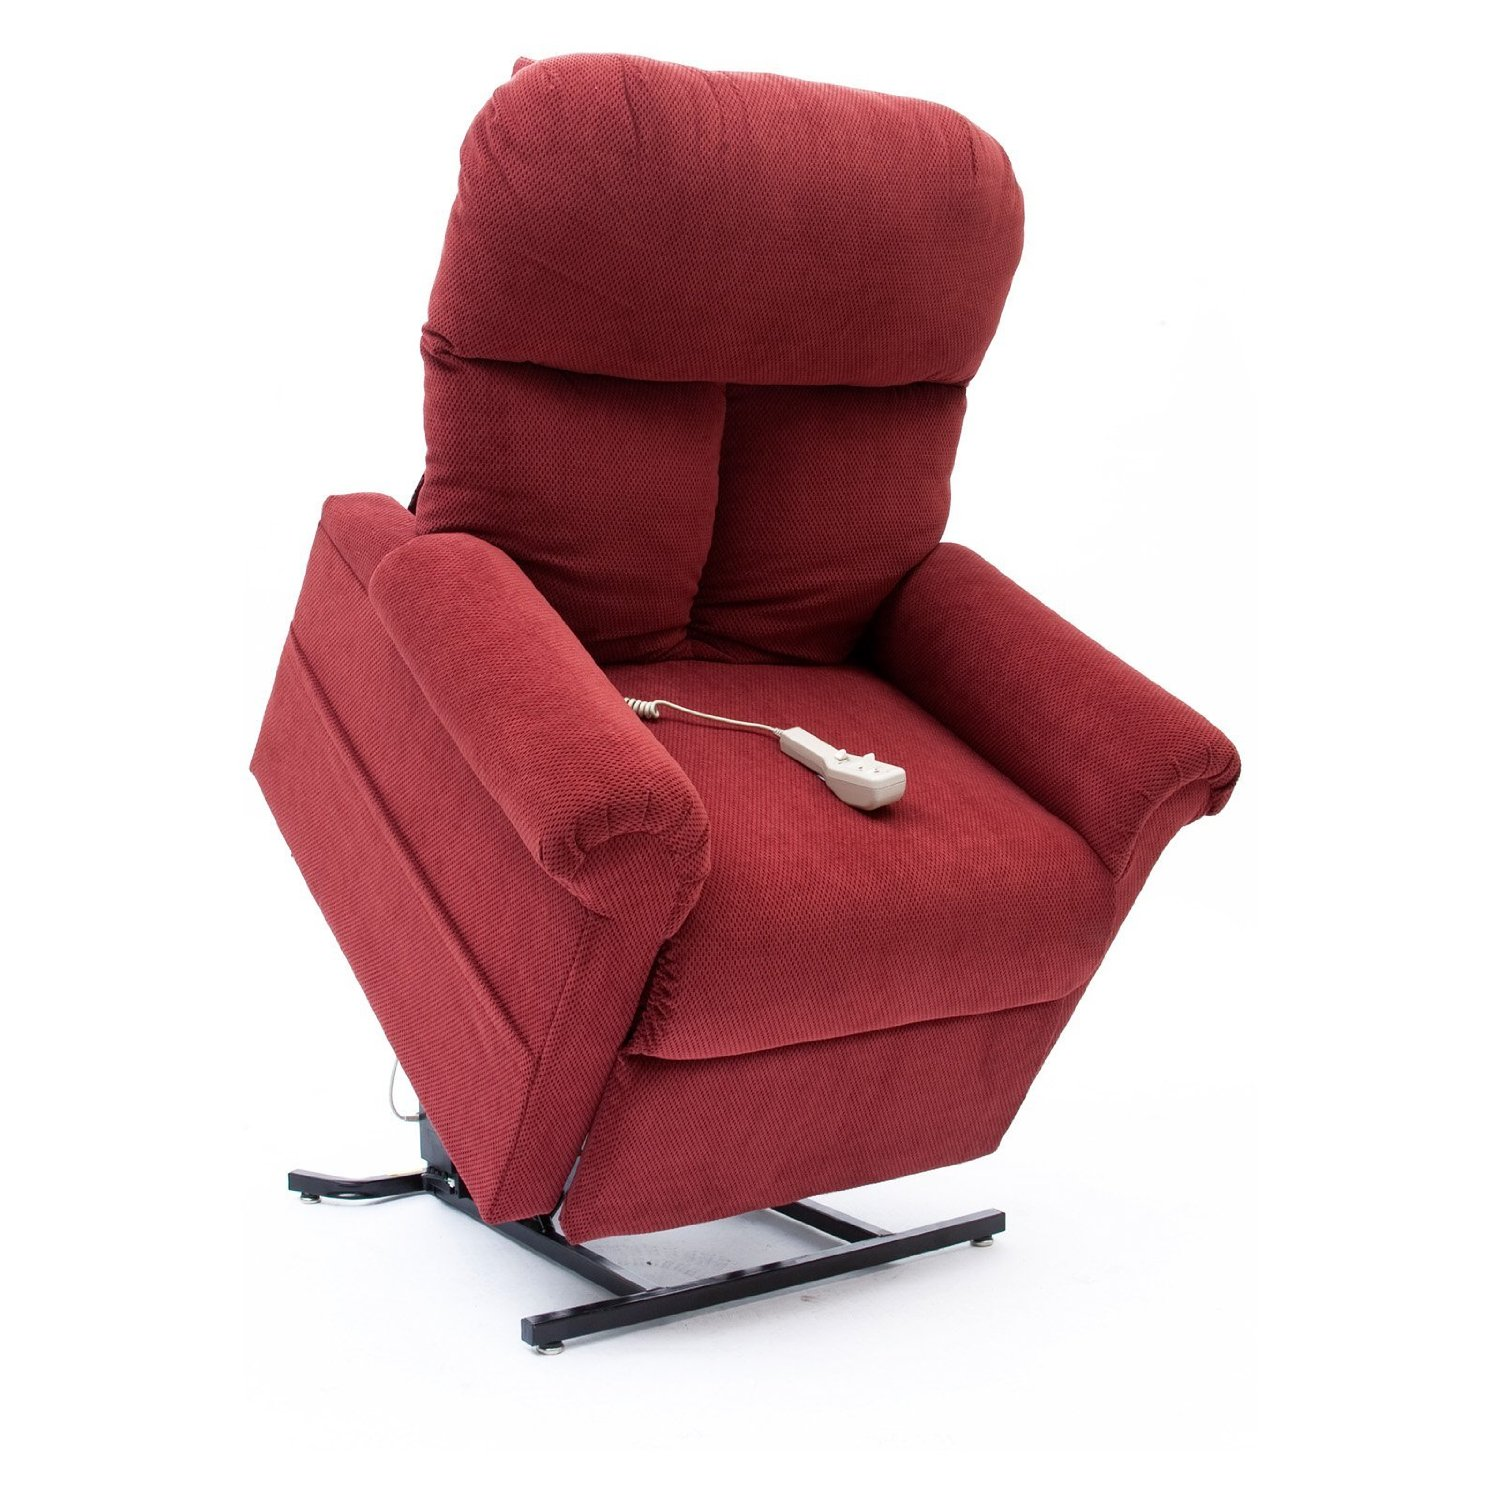 power lift chair graco high 6 in 1 new brandy red fabric easy comfort lc 100